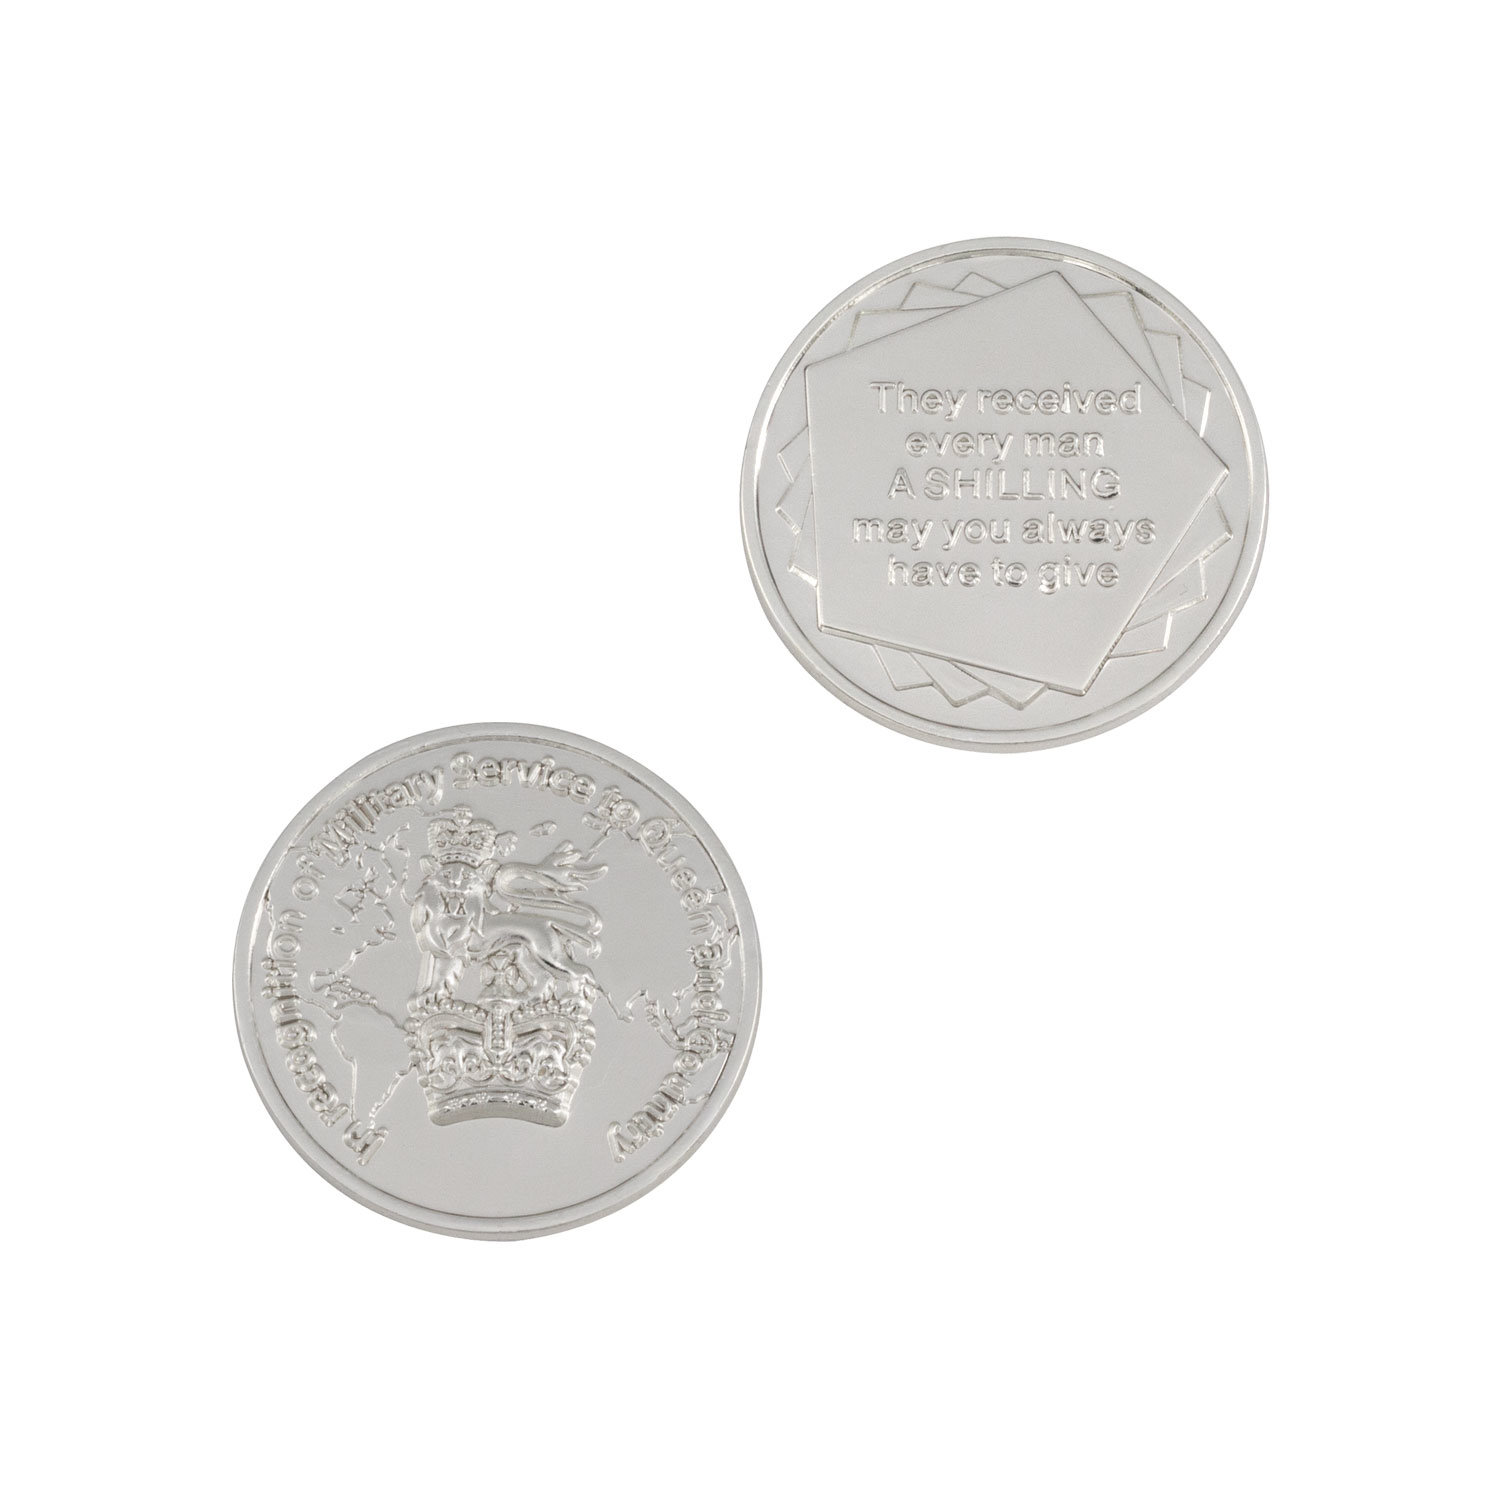 Personal Design Old Antique Style Souvenir Coin